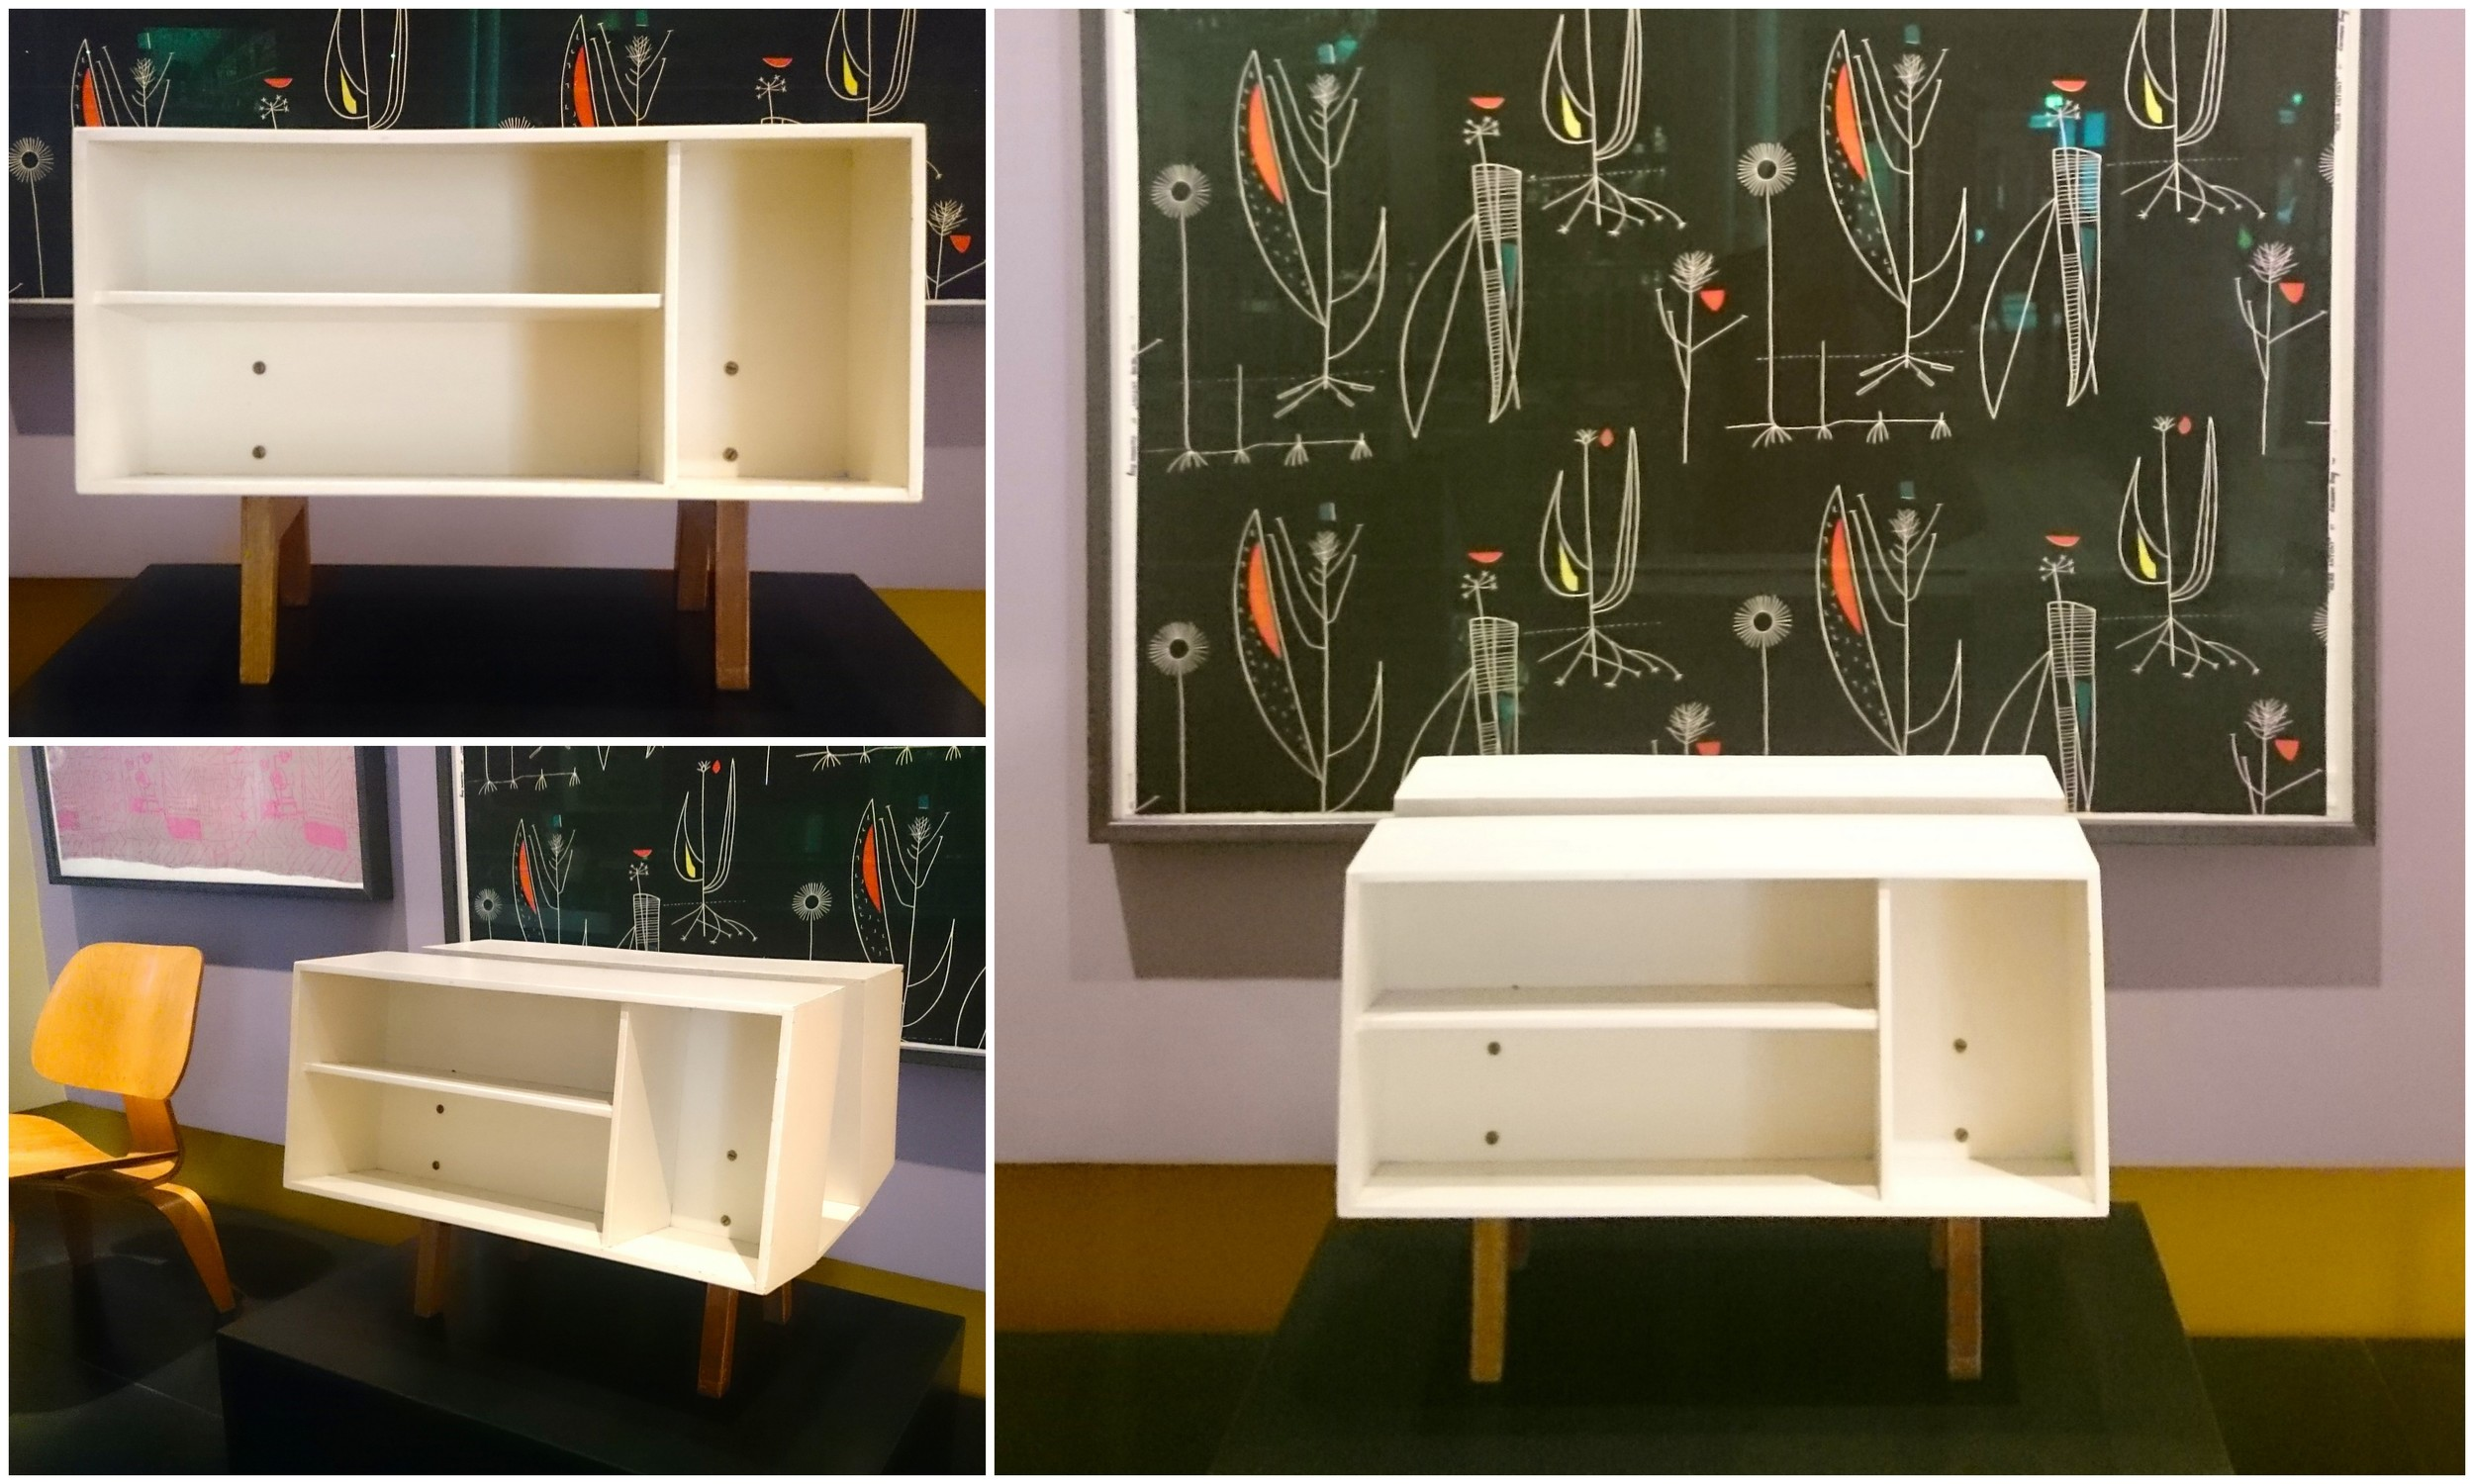 The iconic Penguin Donkey bookcase, mark II re-designed by Ernest Race in 1963 and made by Isokon Limited. I love this wee guy!